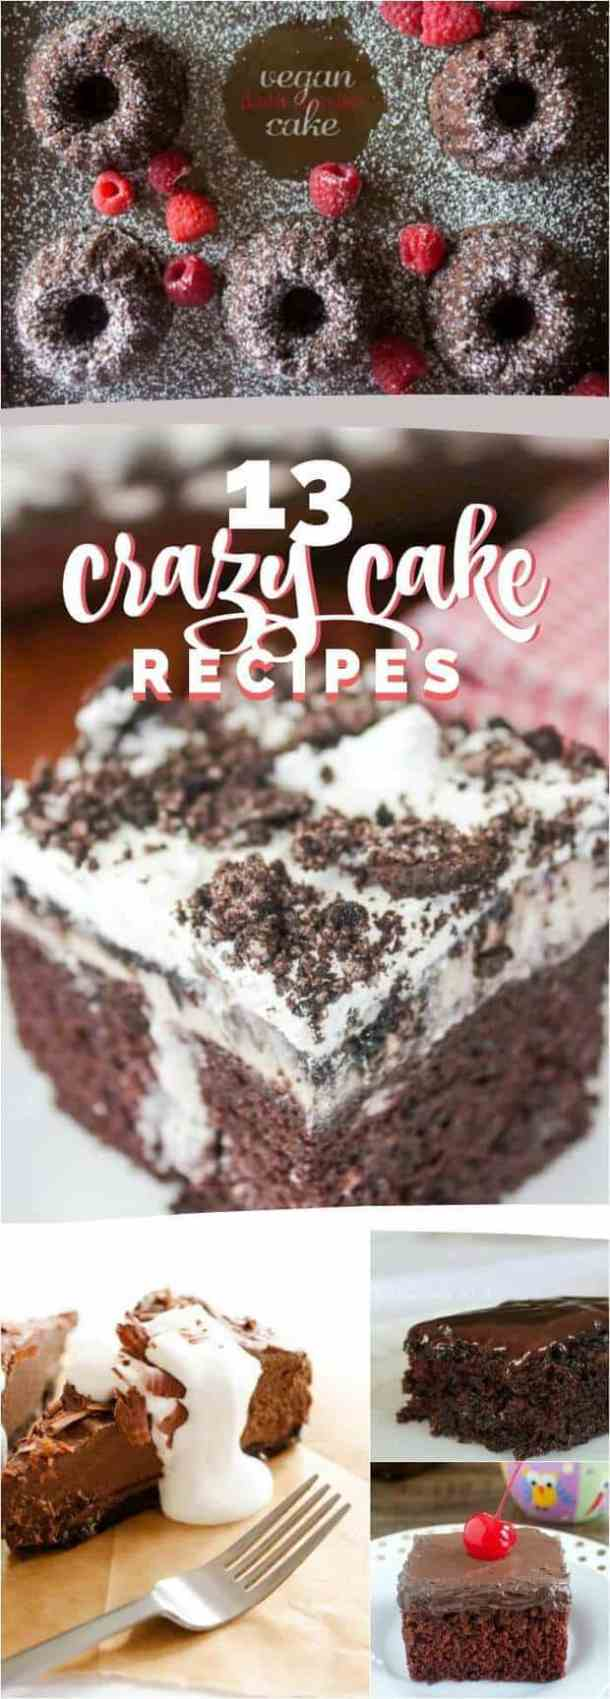 13 Crazy Awesome Crazy Cake Recipes